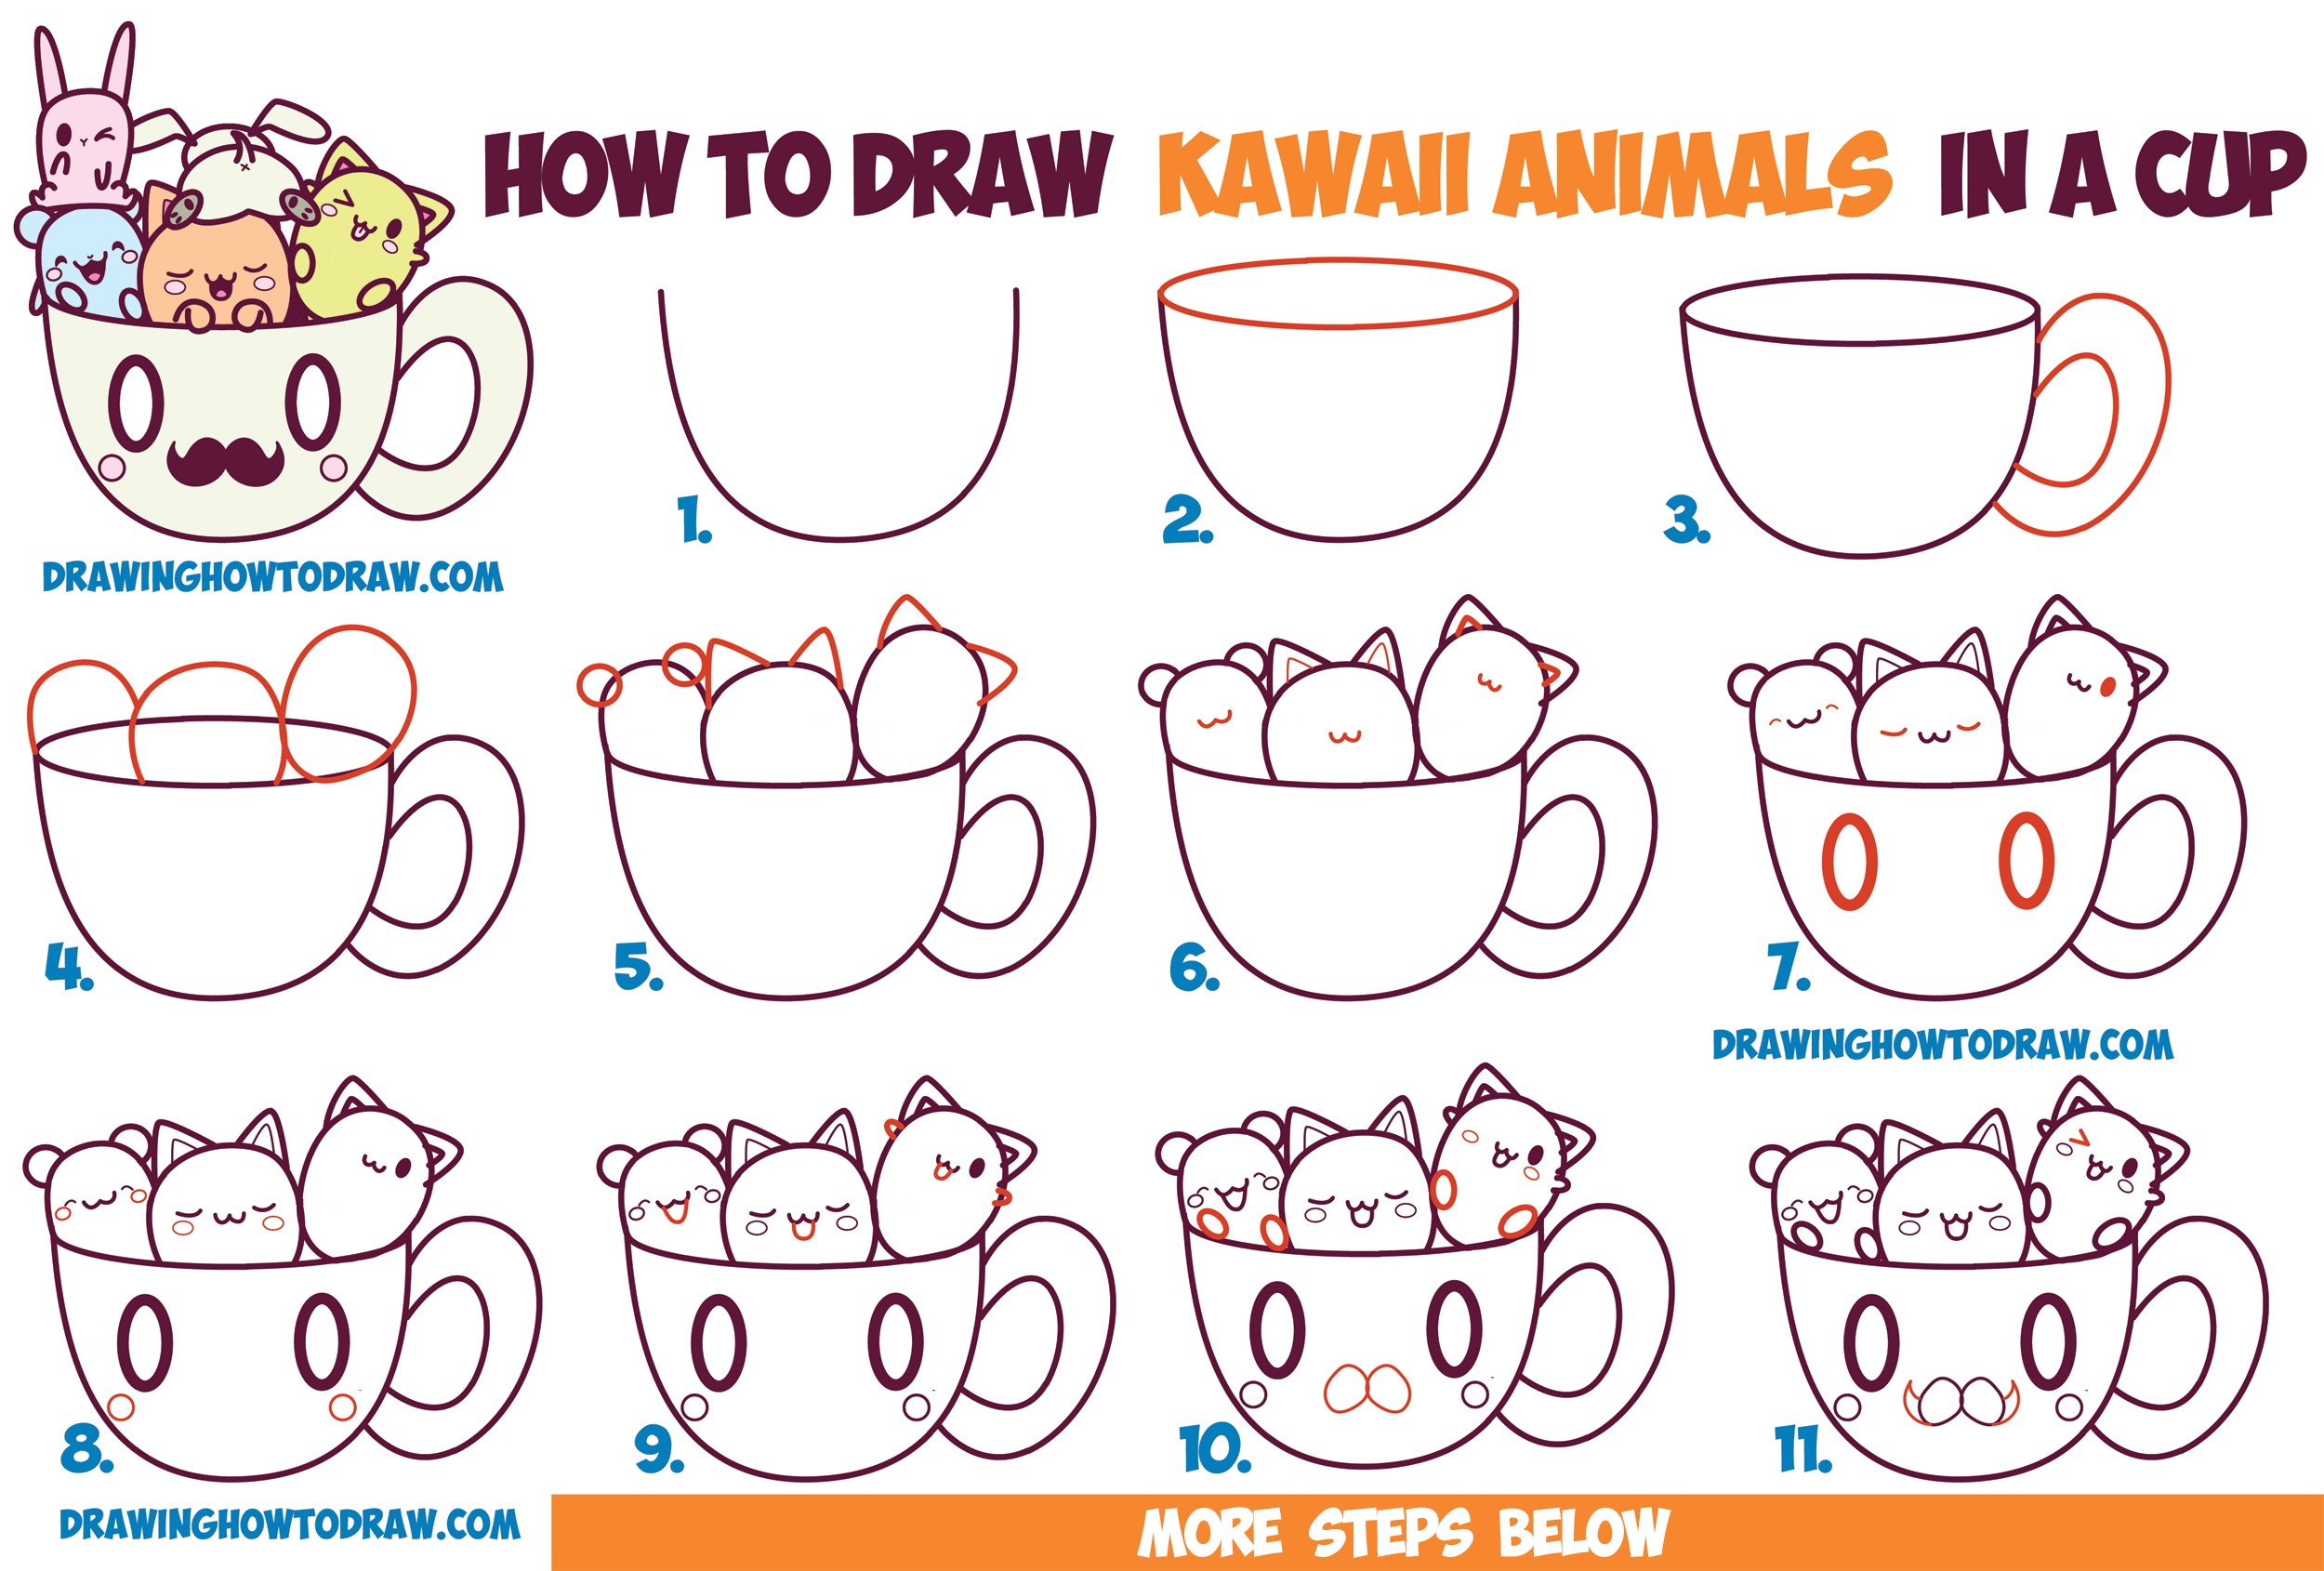 How to Draw Cute Kawaii Animals and Characters in a Coffee Cup Easy Step by Step Drawing Tutorial for Beginners